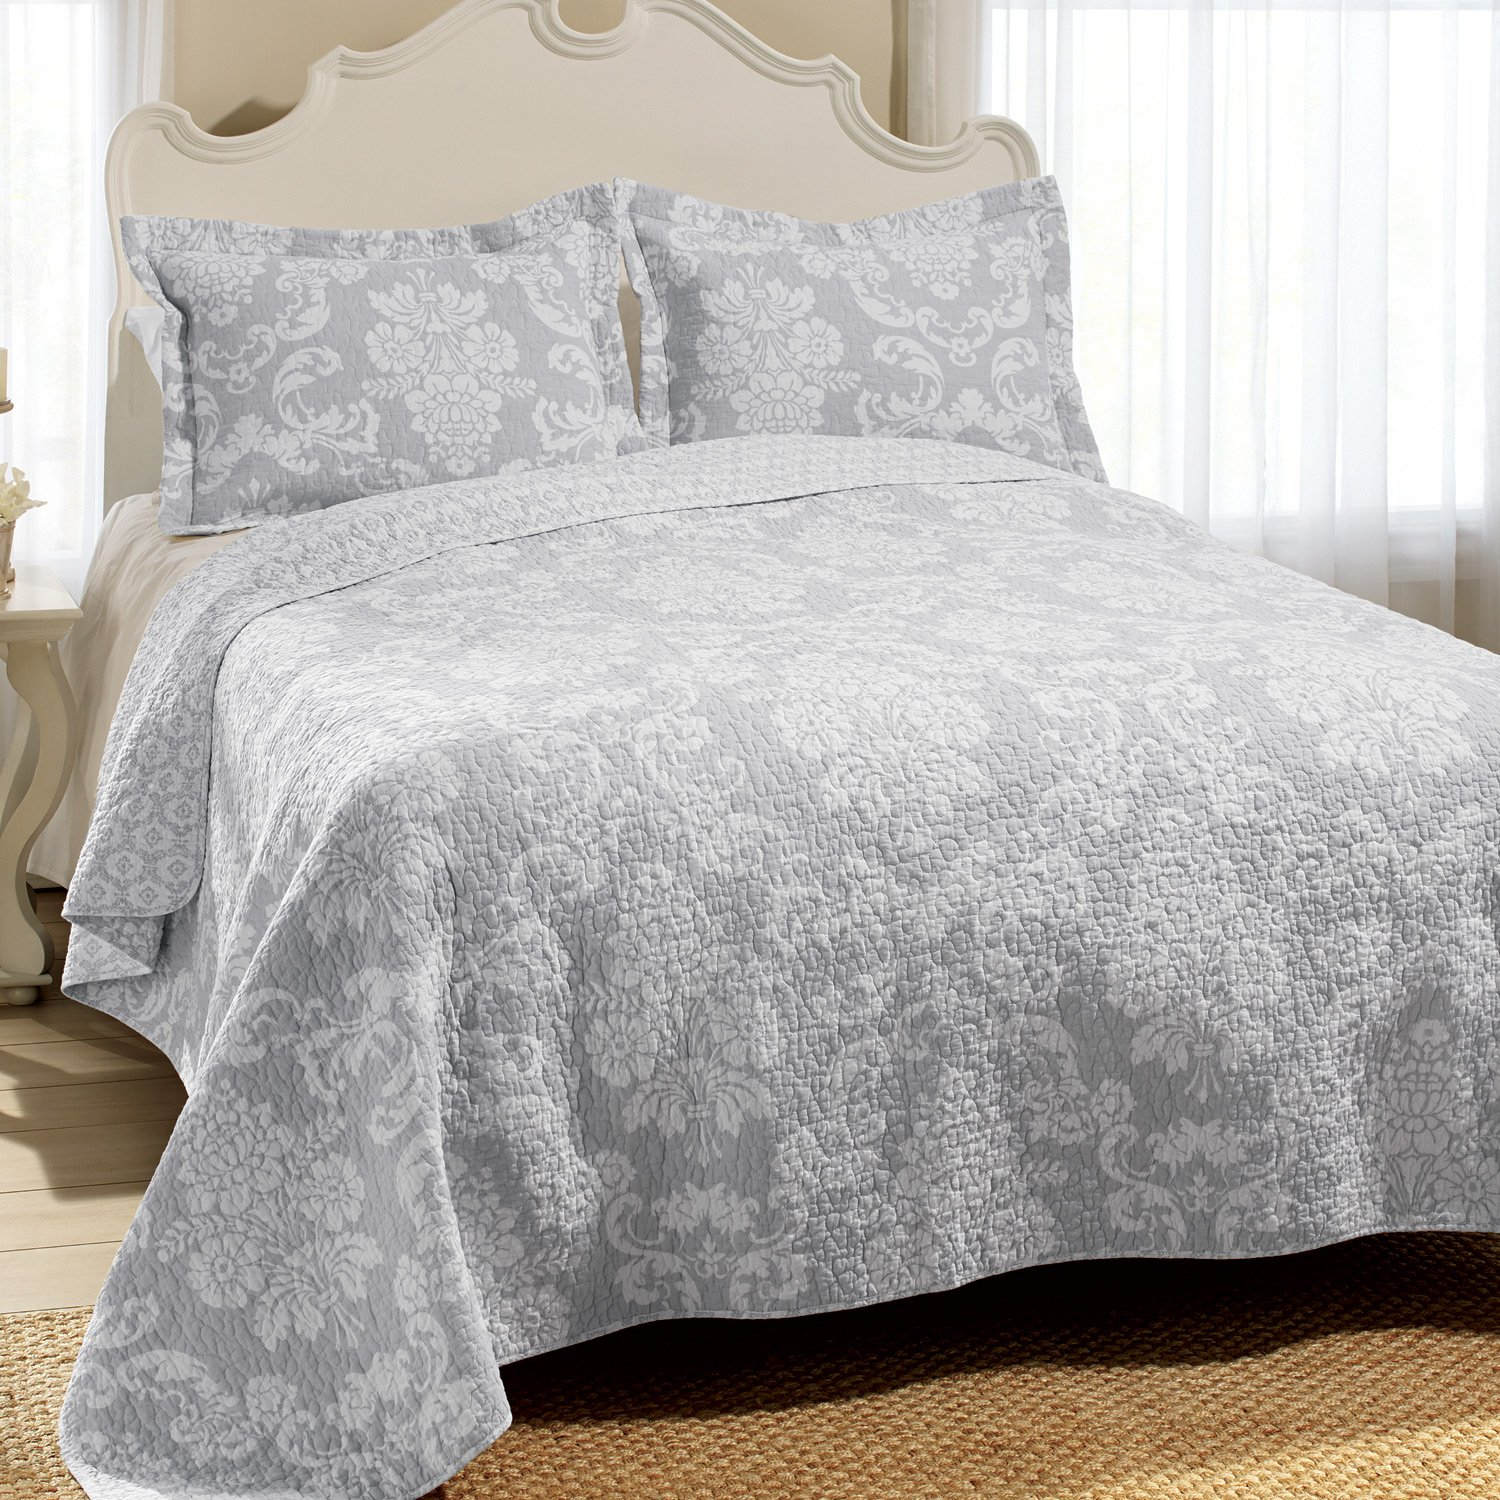 Amazon.com: Laura Ashley Venetia Cotton Reversible Quilt, King ... : laura ashley king quilt - Adamdwight.com